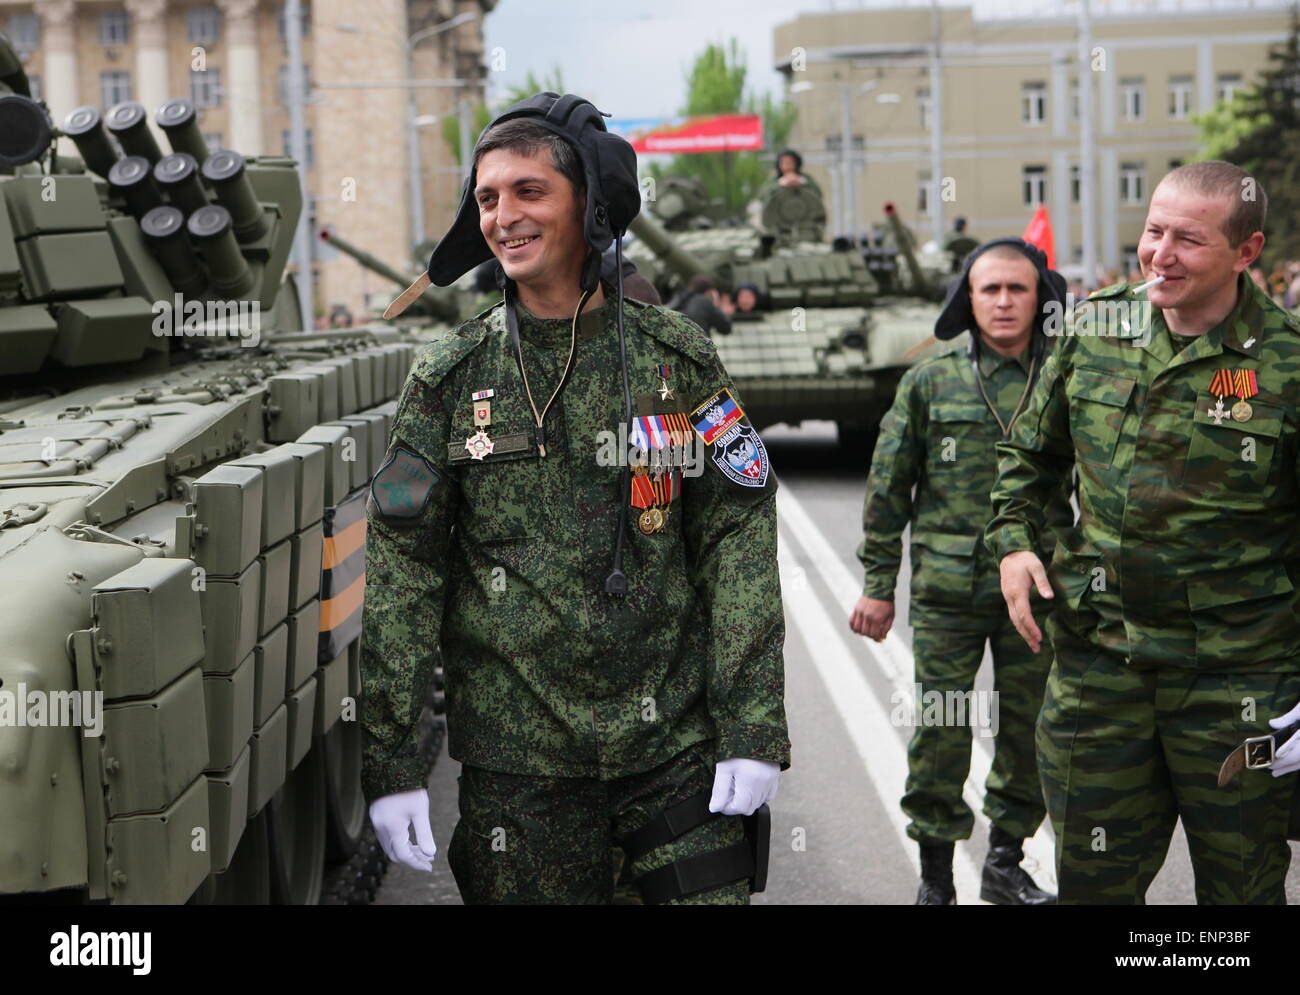 do sk ukraine 9th may 2015 do sk people s republic